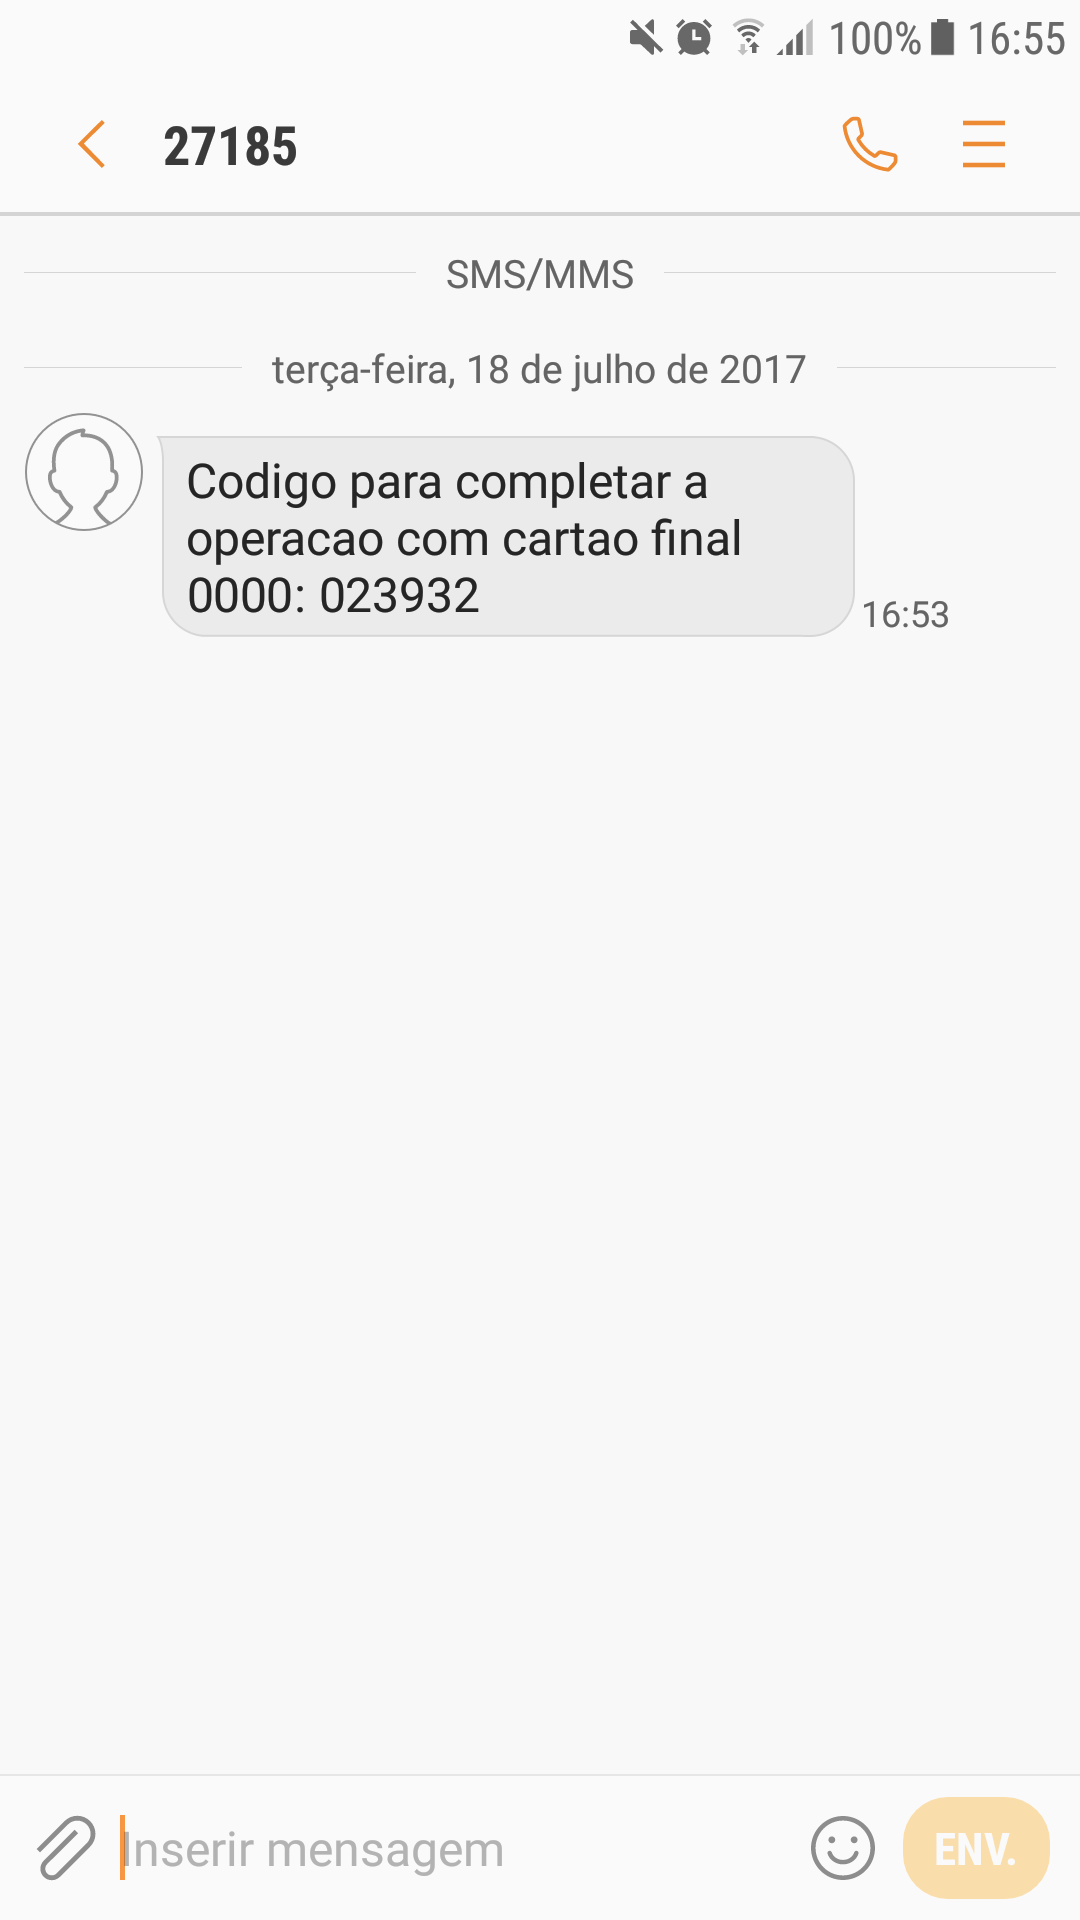 print_sms.png